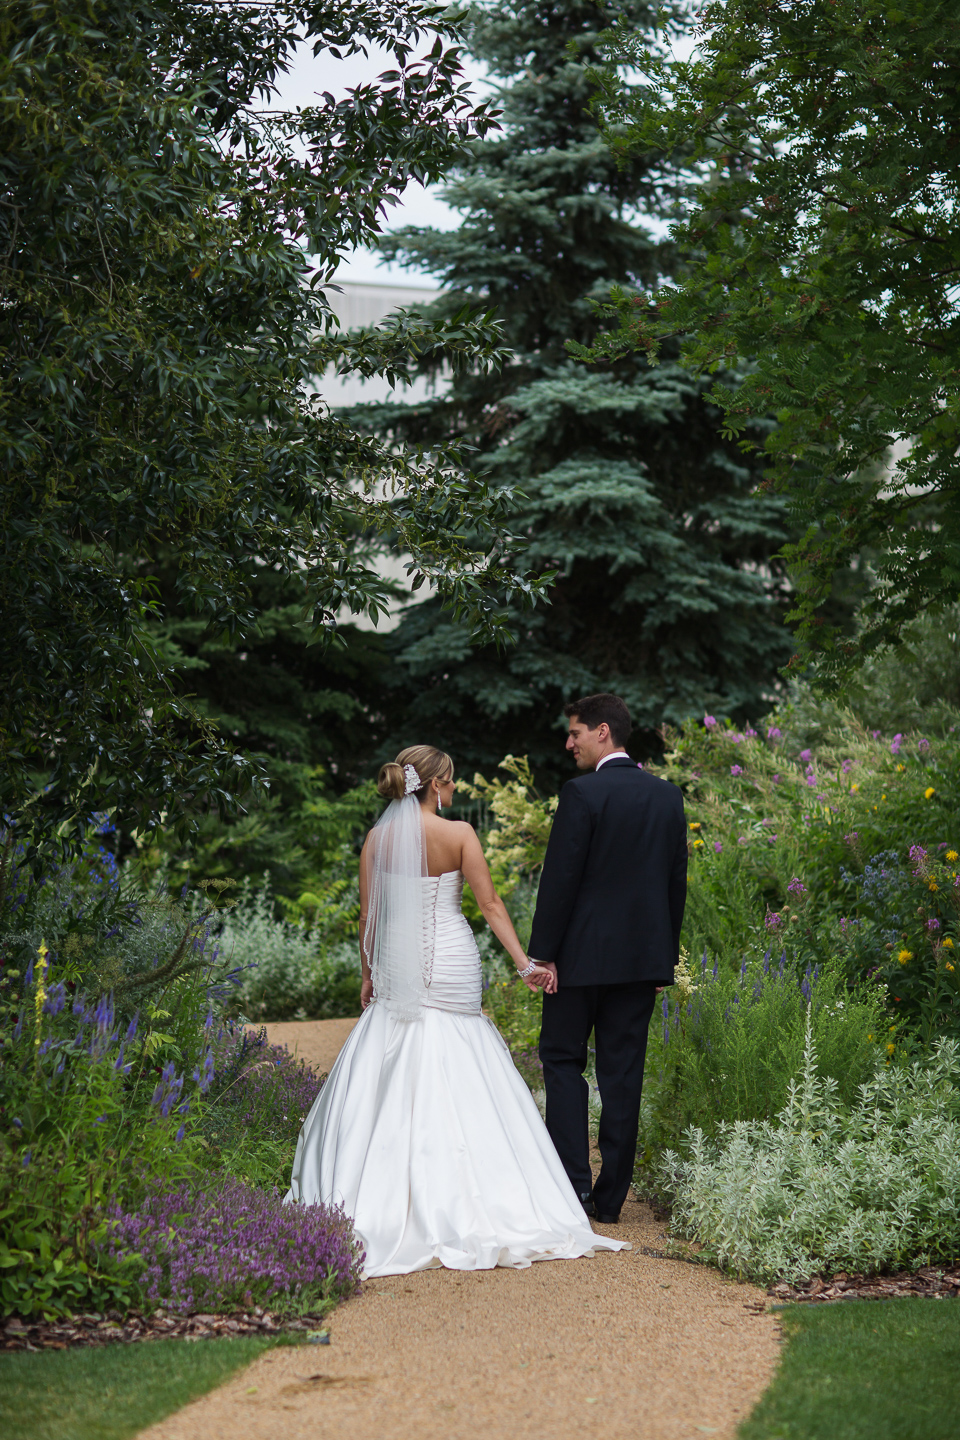 Sandra Bettina Weddings Edmonton and St. Albert Wedding Planner Oasis Conference Centre